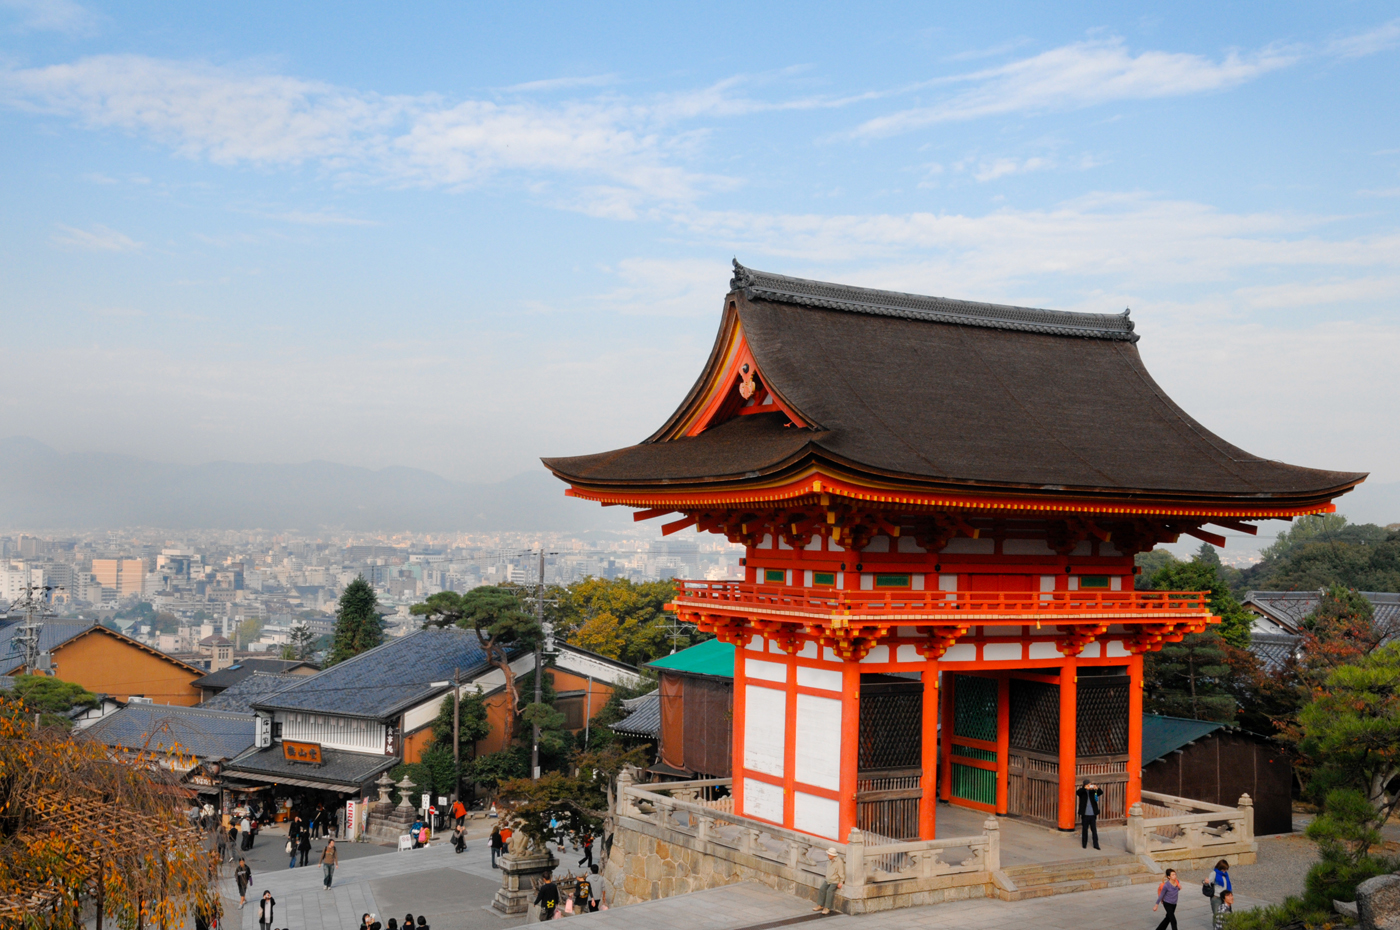 Pagoda and City View - Kyoto Japan